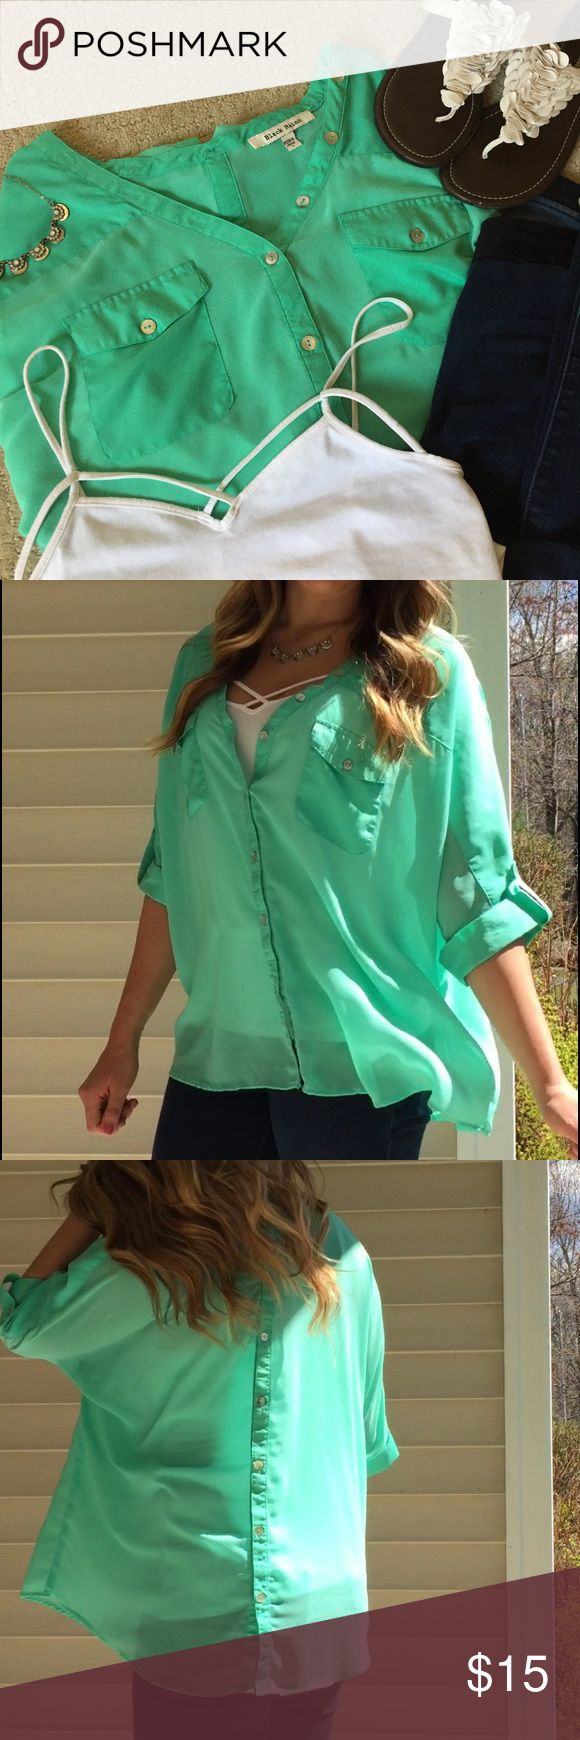 """Mint green blouse Flowing and light weight mint green blouse.  Very vibrant color  Pearl colored buttons.  Buttons all up the front and down the back.  Can unbutton all buttons to creat different looks  Size large worn once  Batwing type of sleeve.  🌺Make me offers  🌺bundle and save  🌺ask me questions  ( model is 5'9"""" and typically wears size small )  ❤ Tops Button Down Shirts"""